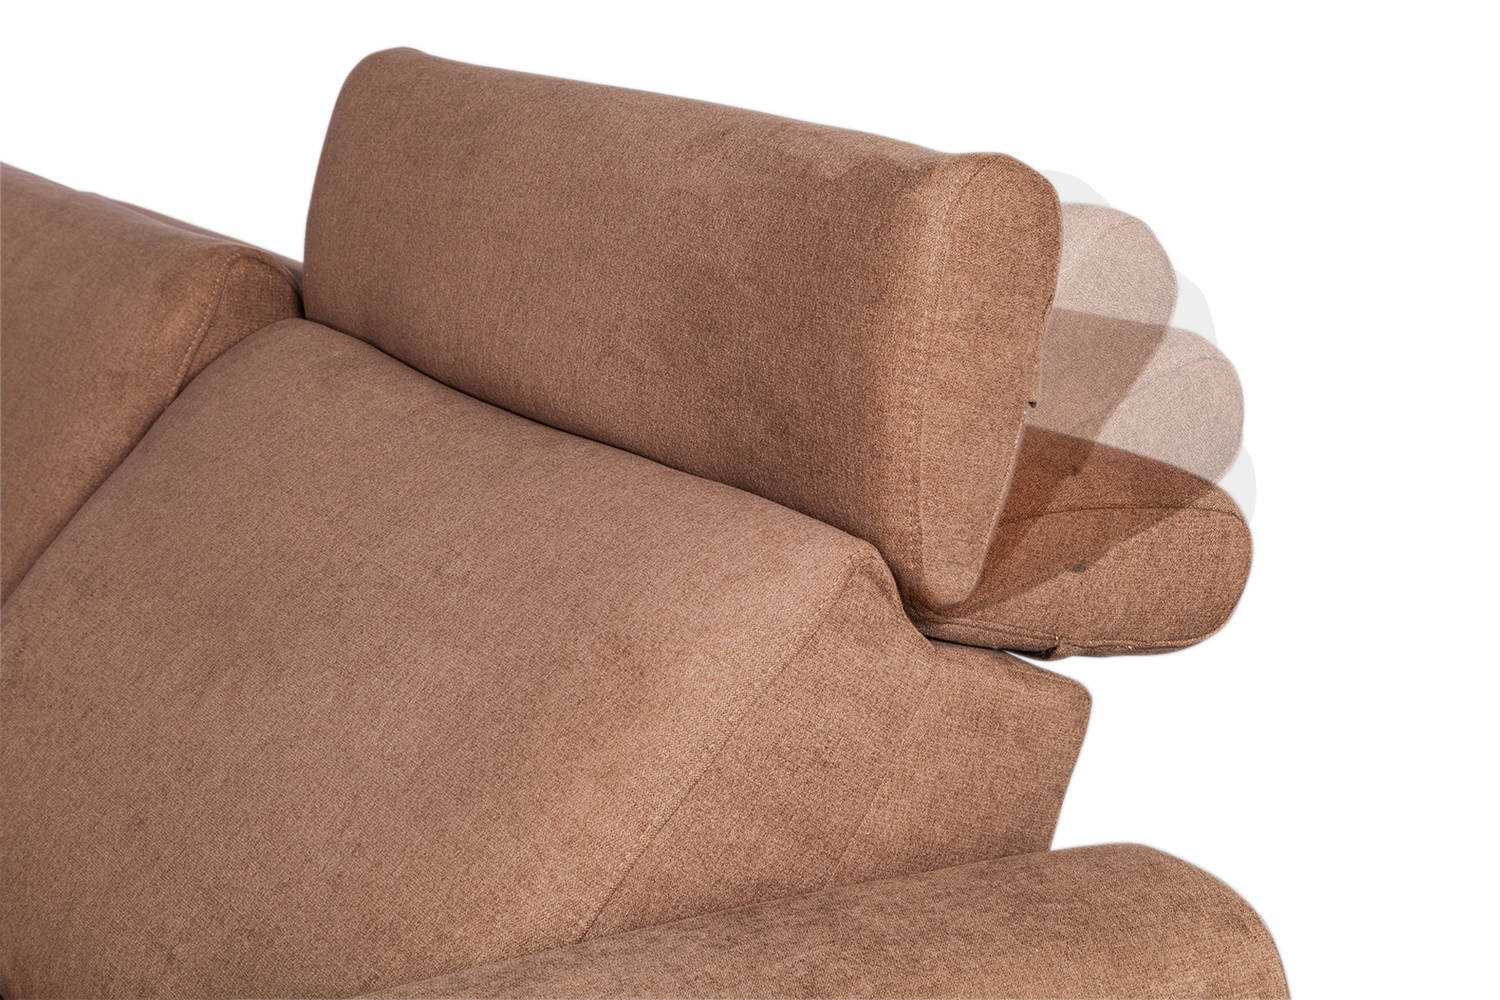 In picture Hilton with adjustable headrest, fabric: Mine 4110.